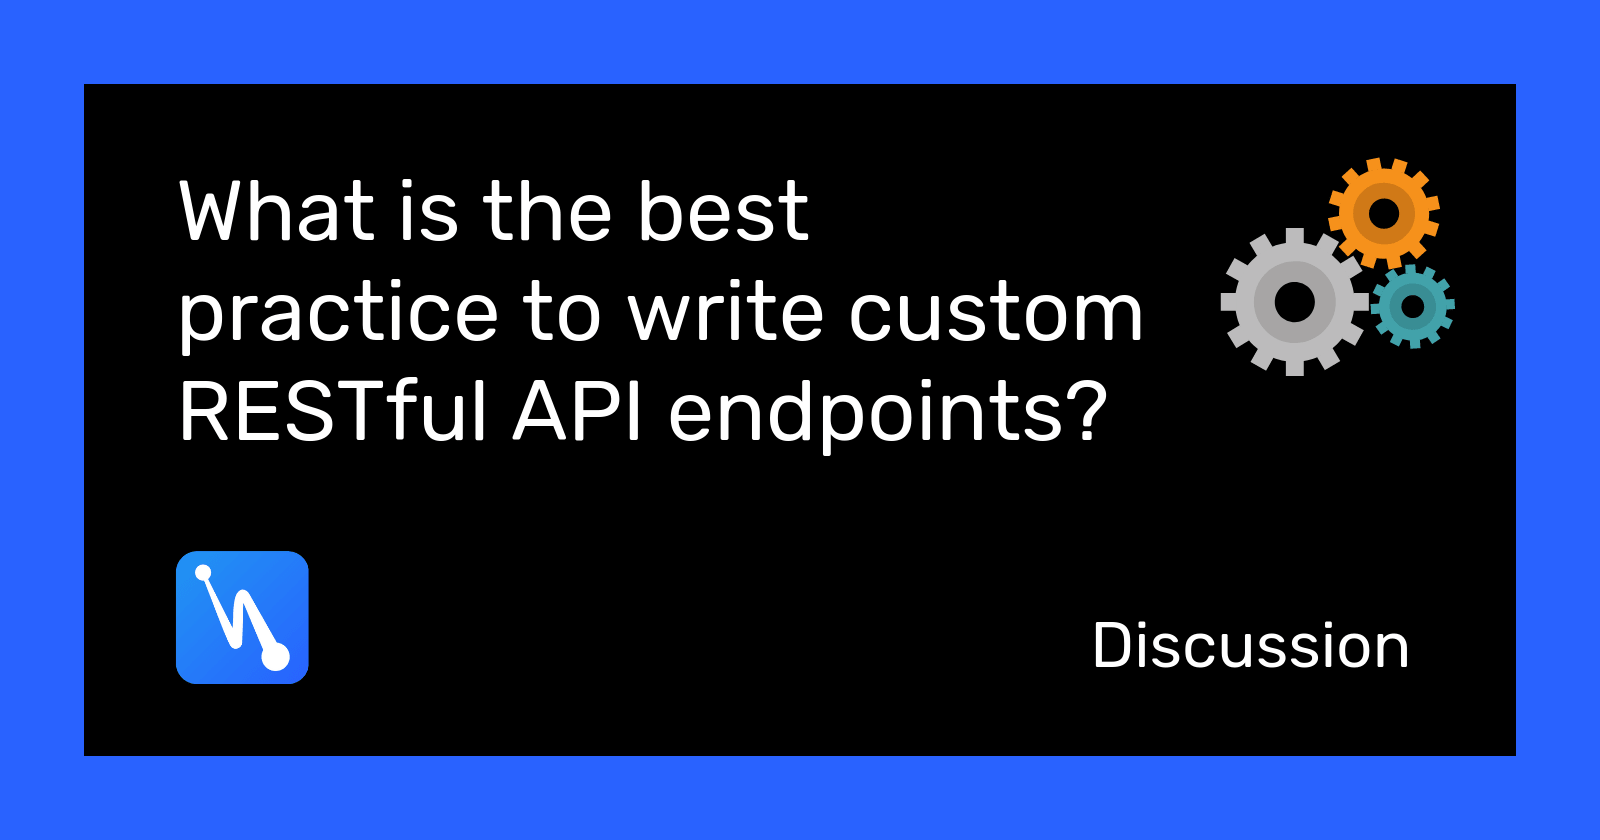 Marco Alka's answer to What is the best practice to write custom